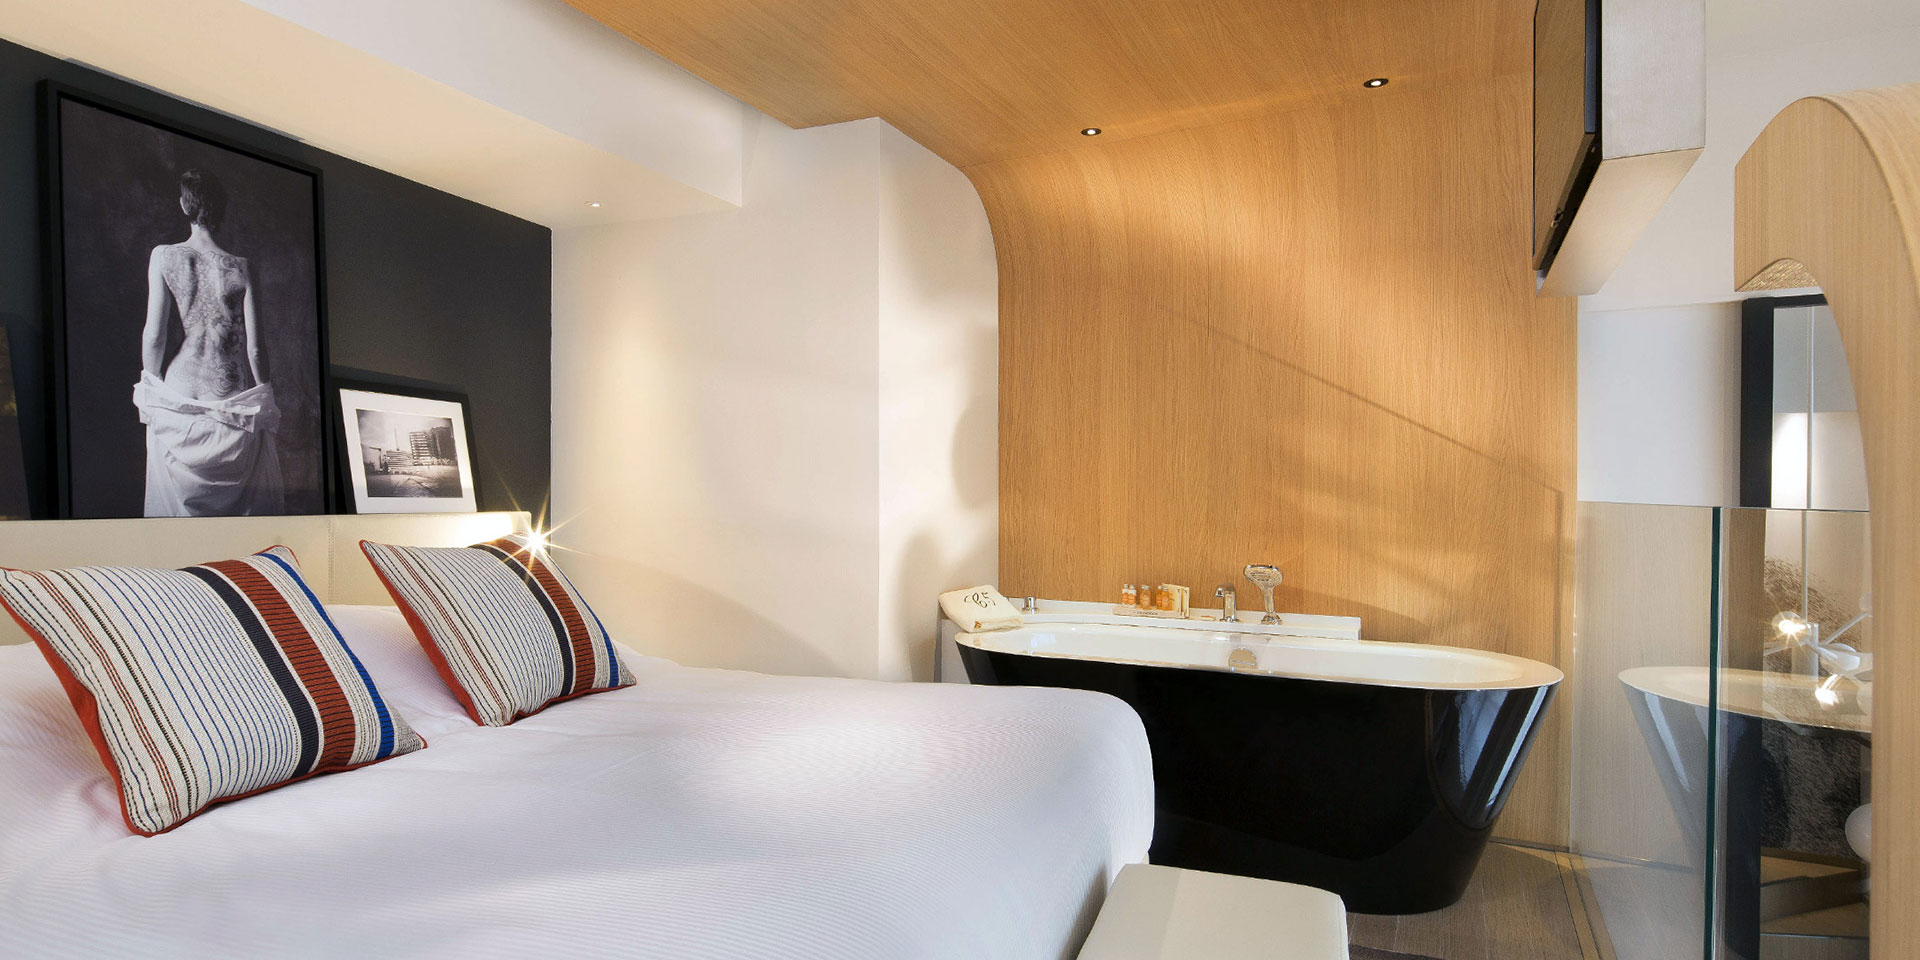 LeCinqCodet-Paris-France-Europe-rooms.jpg